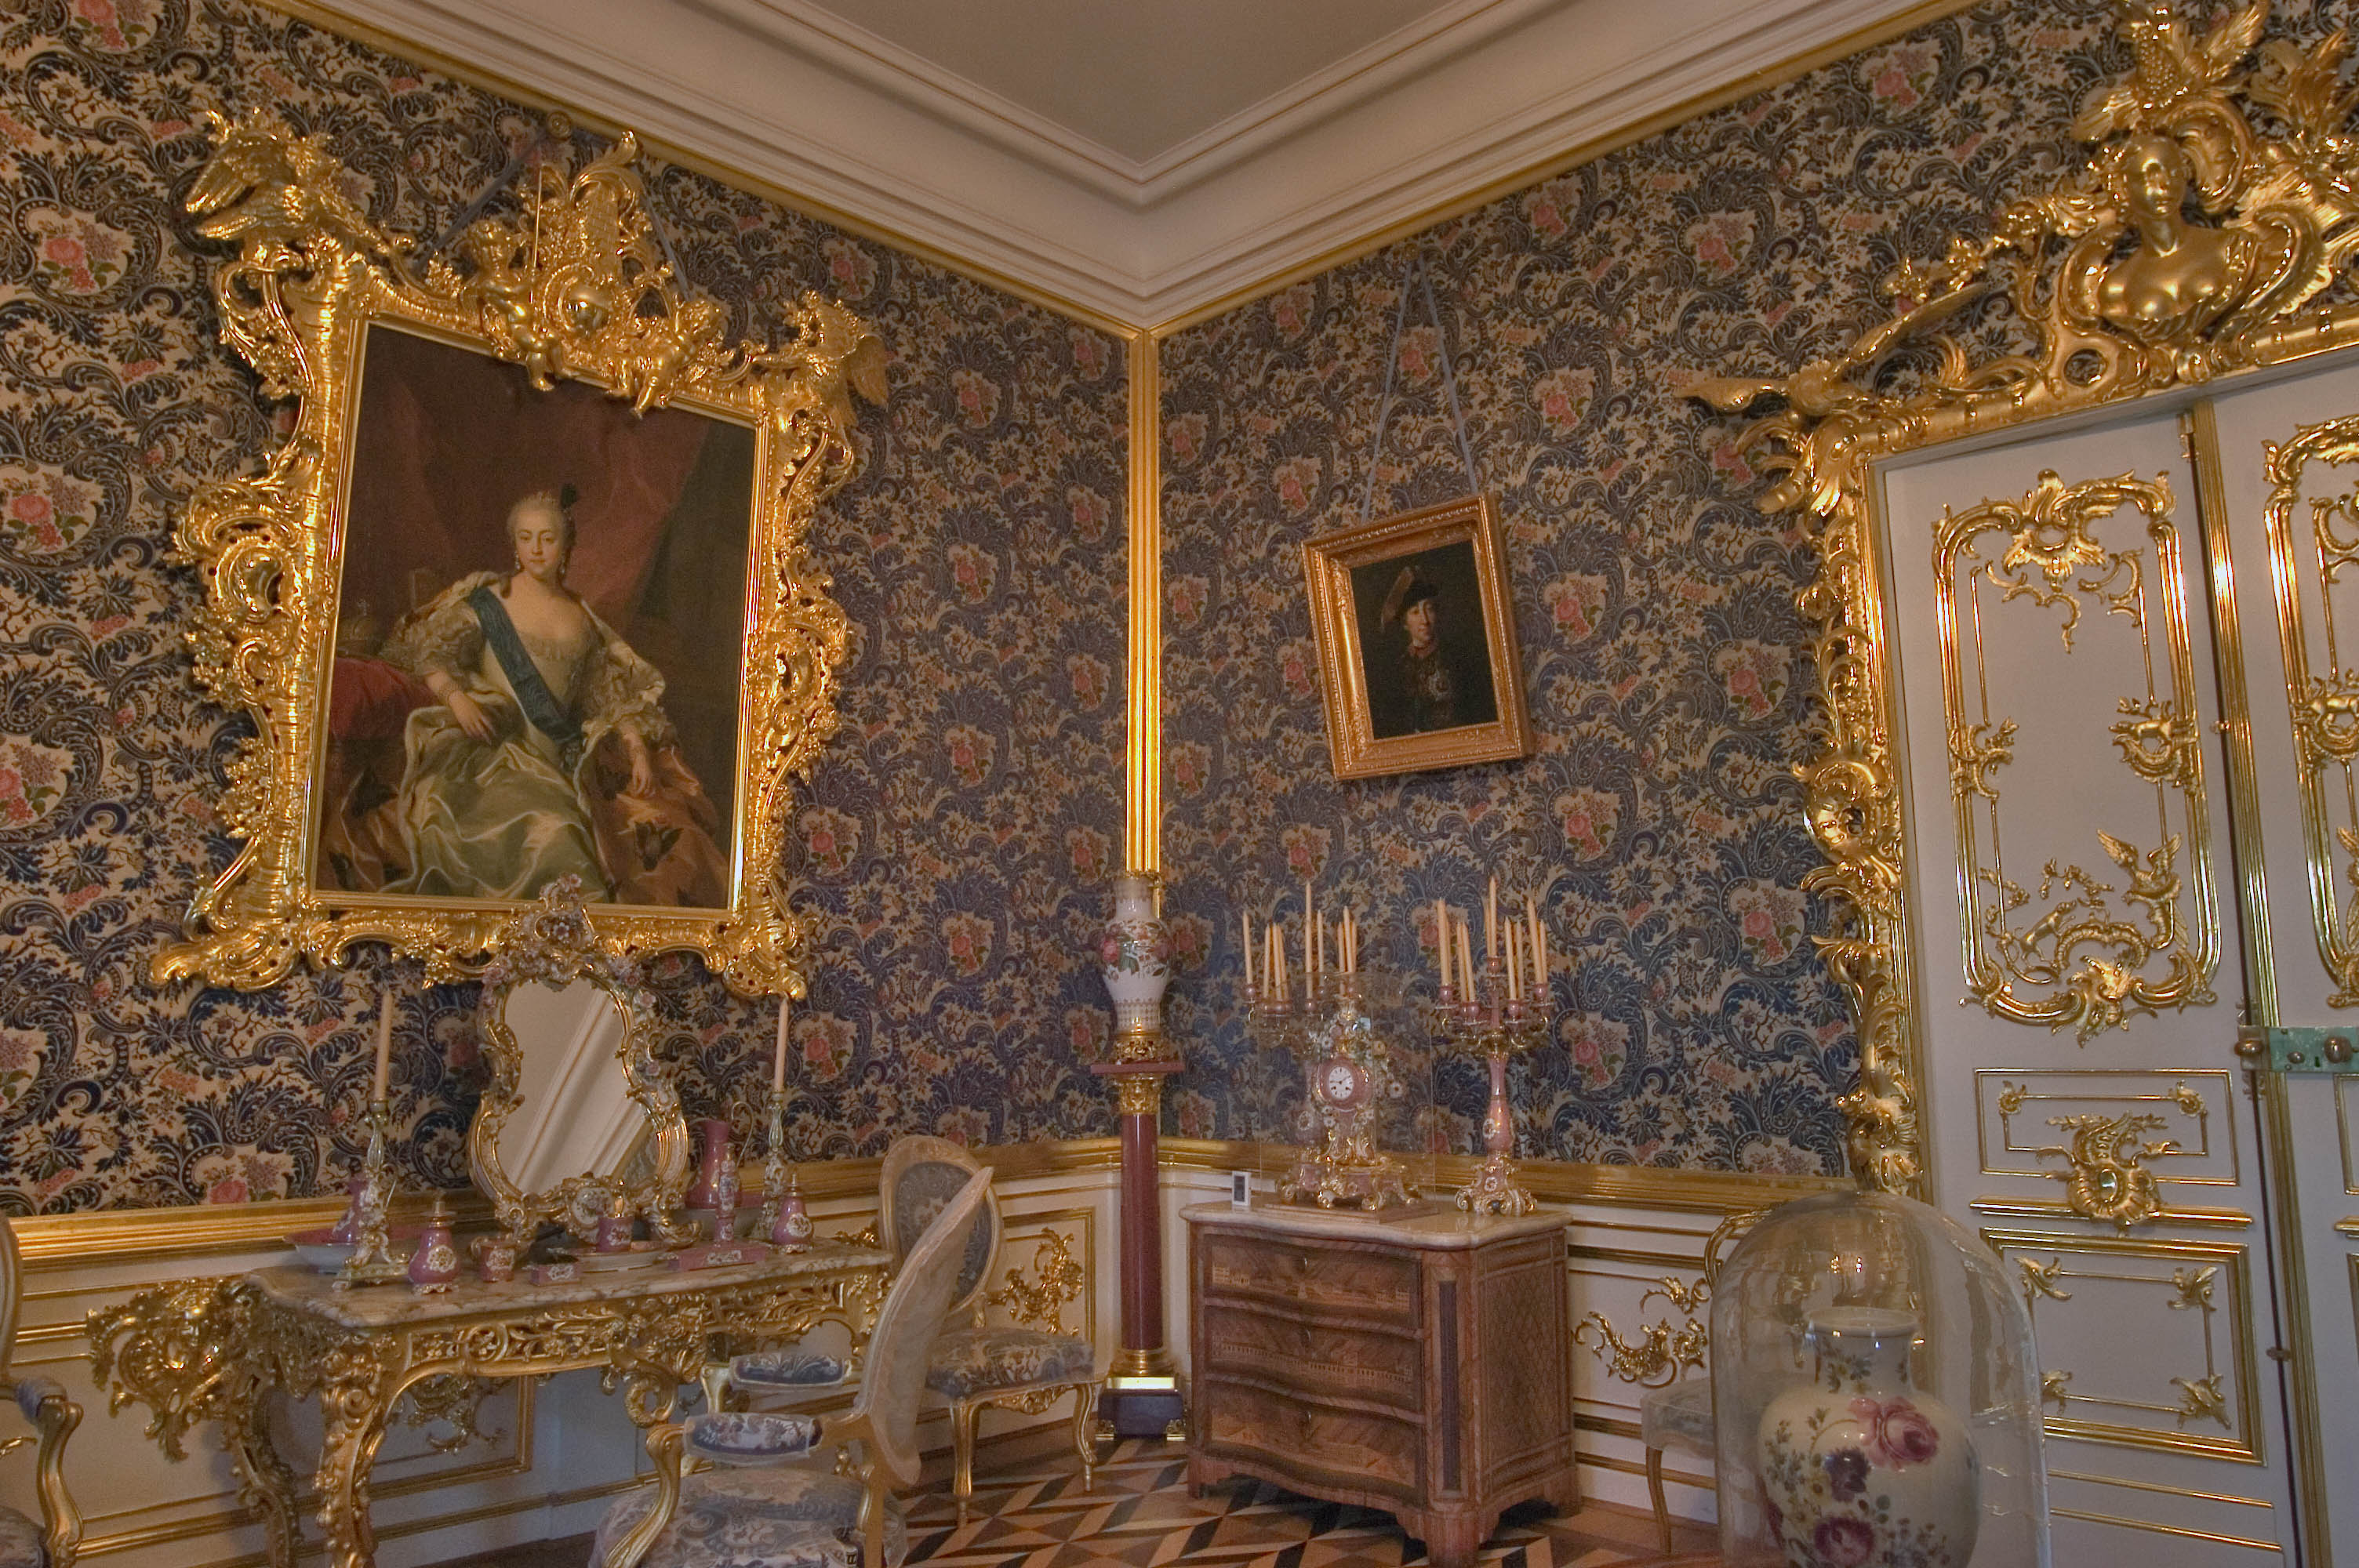 saint_petersburg_vyborg-decorated_room_grand_palace_peterhof Palace Home Designs on home building designs, home castle designs, home party designs, home temple designs, home wall designs, home shop designs, home church designs, home park designs, home casino designs, home fortress designs, home gate designs, home lake designs, home classic designs, home library designs, home hall designs, home pier designs, home beach designs,